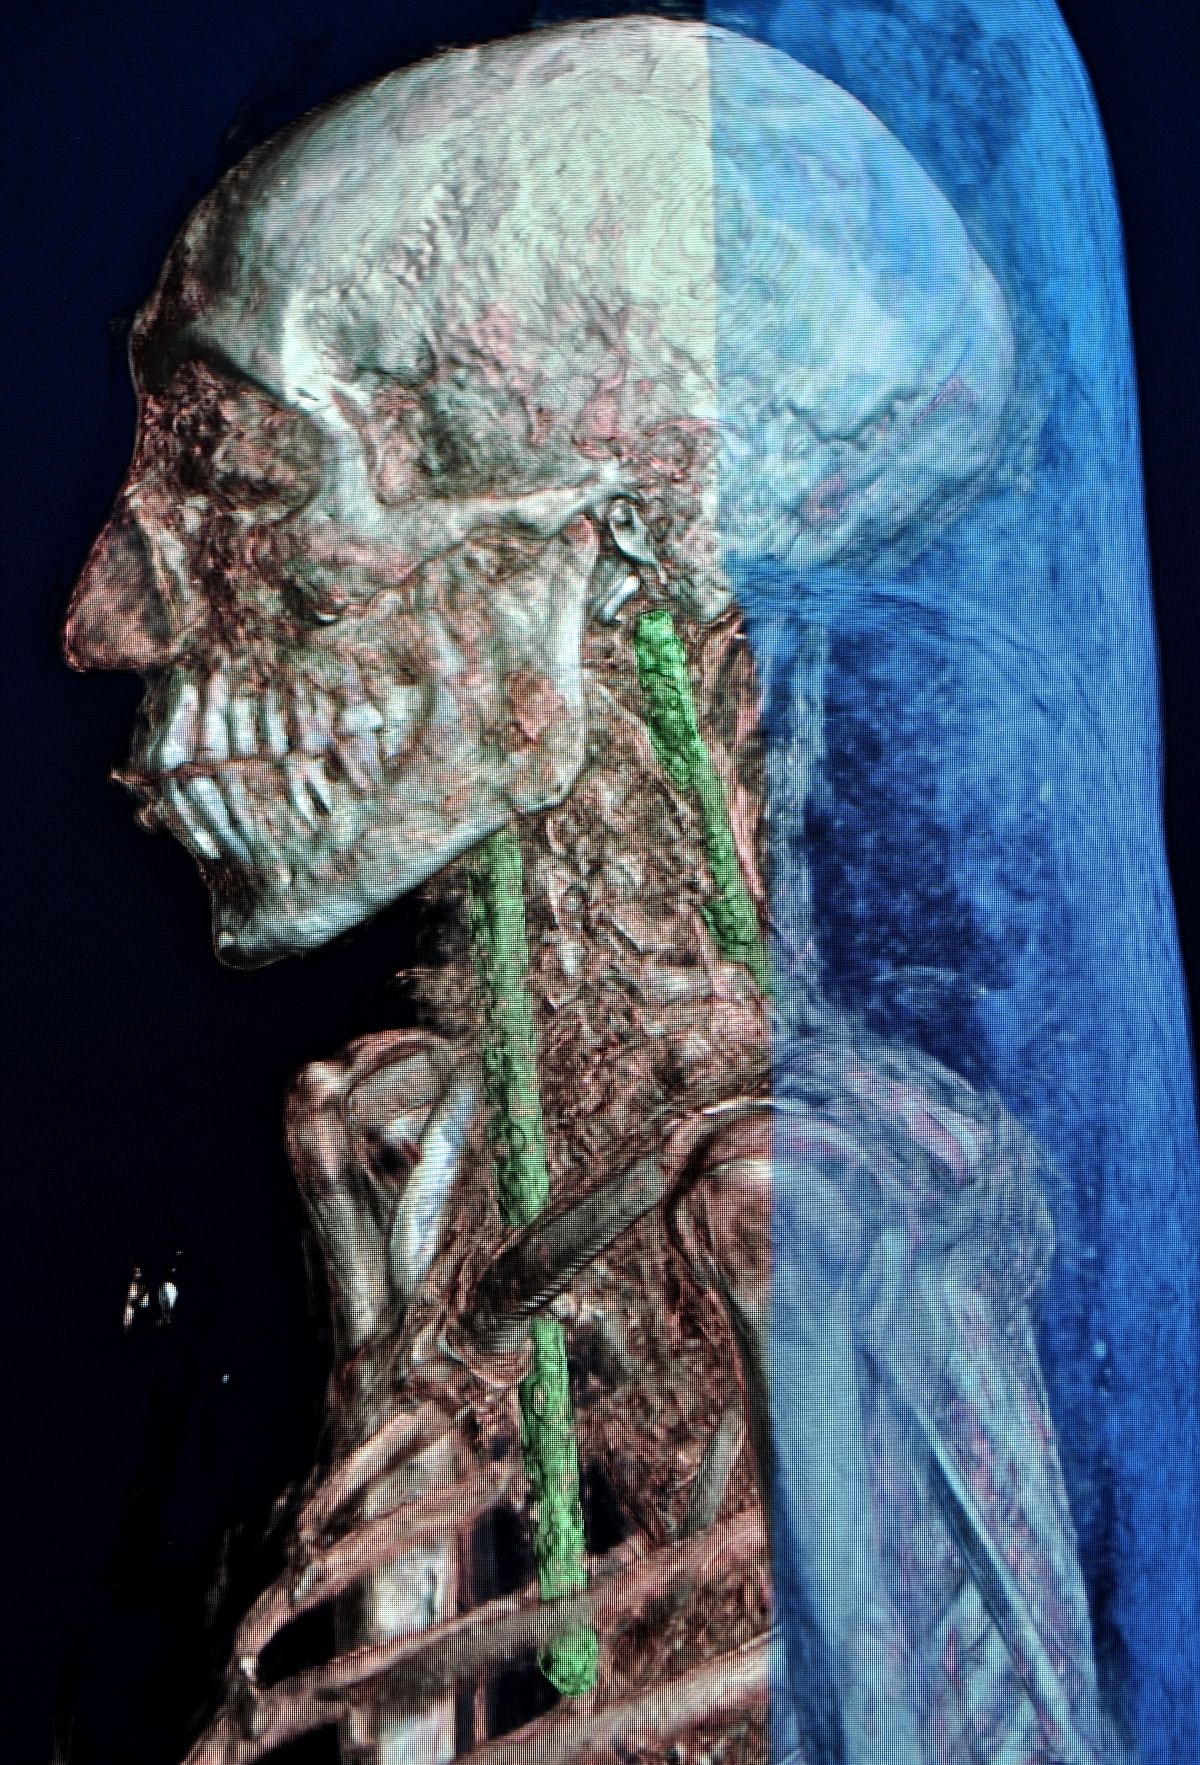 The CT scan shows ancient repairs of rods inserted into the skull to keep the head attached to the body